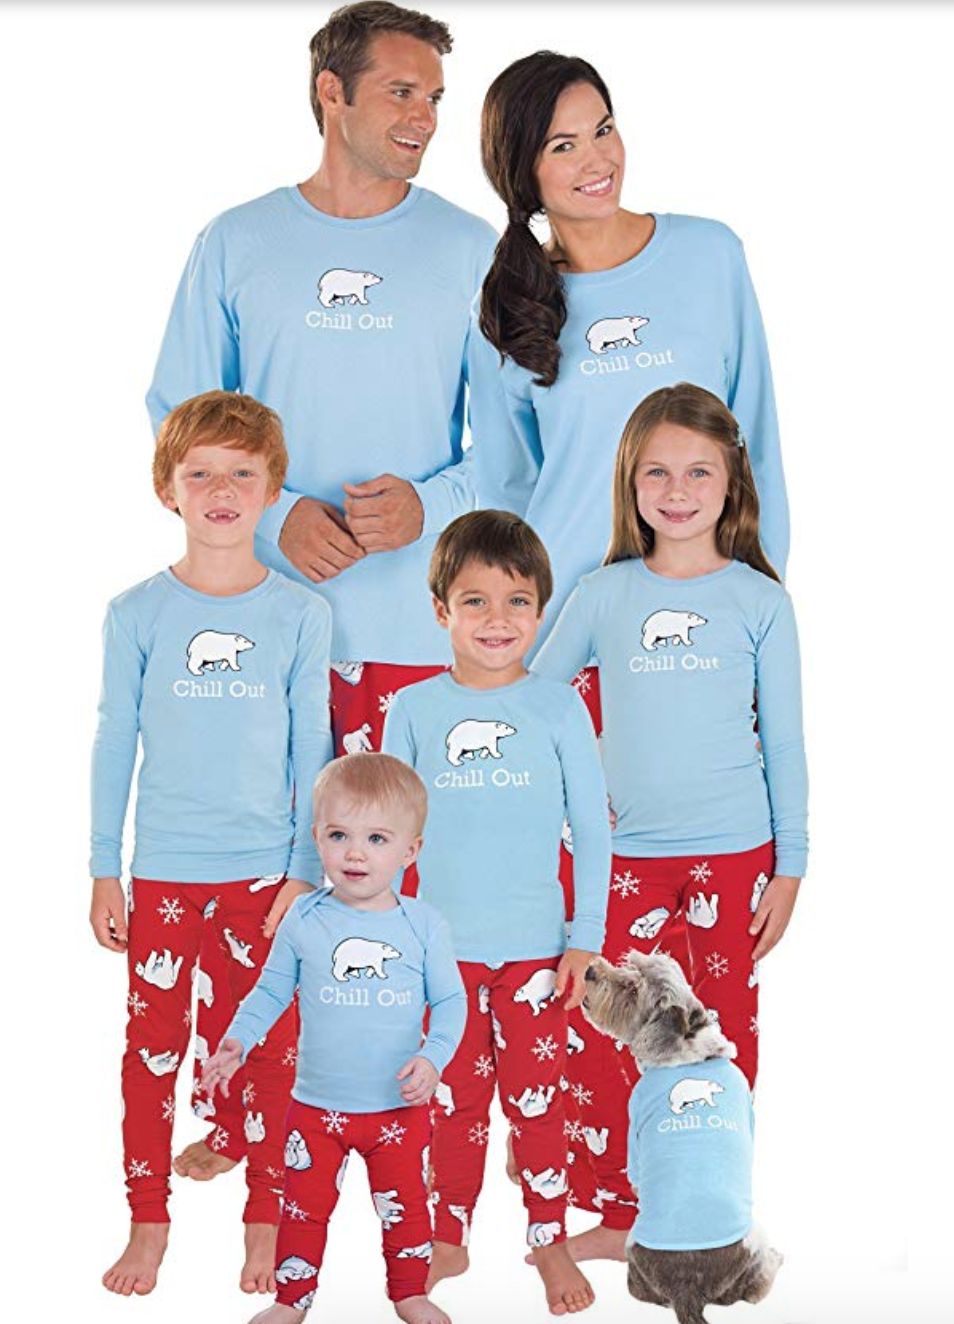 """<p><strong>PajamaGram</strong></p><p>Starting from $15</p><p><a href=""""https://www.amazon.com/dp/B004DB8CZC?tag=syn-yahoo-20&ascsubtag=%5Bartid%7C10055.g.4946%5Bsrc%7Cyahoo-us"""" rel=""""nofollow noopener"""" target=""""_blank"""" data-ylk=""""slk:Shop Now"""" class=""""link rapid-noclick-resp"""">Shop Now</a></p><p>One of them family members acting out? Let them know to chill out because it's the holidays! </p>"""